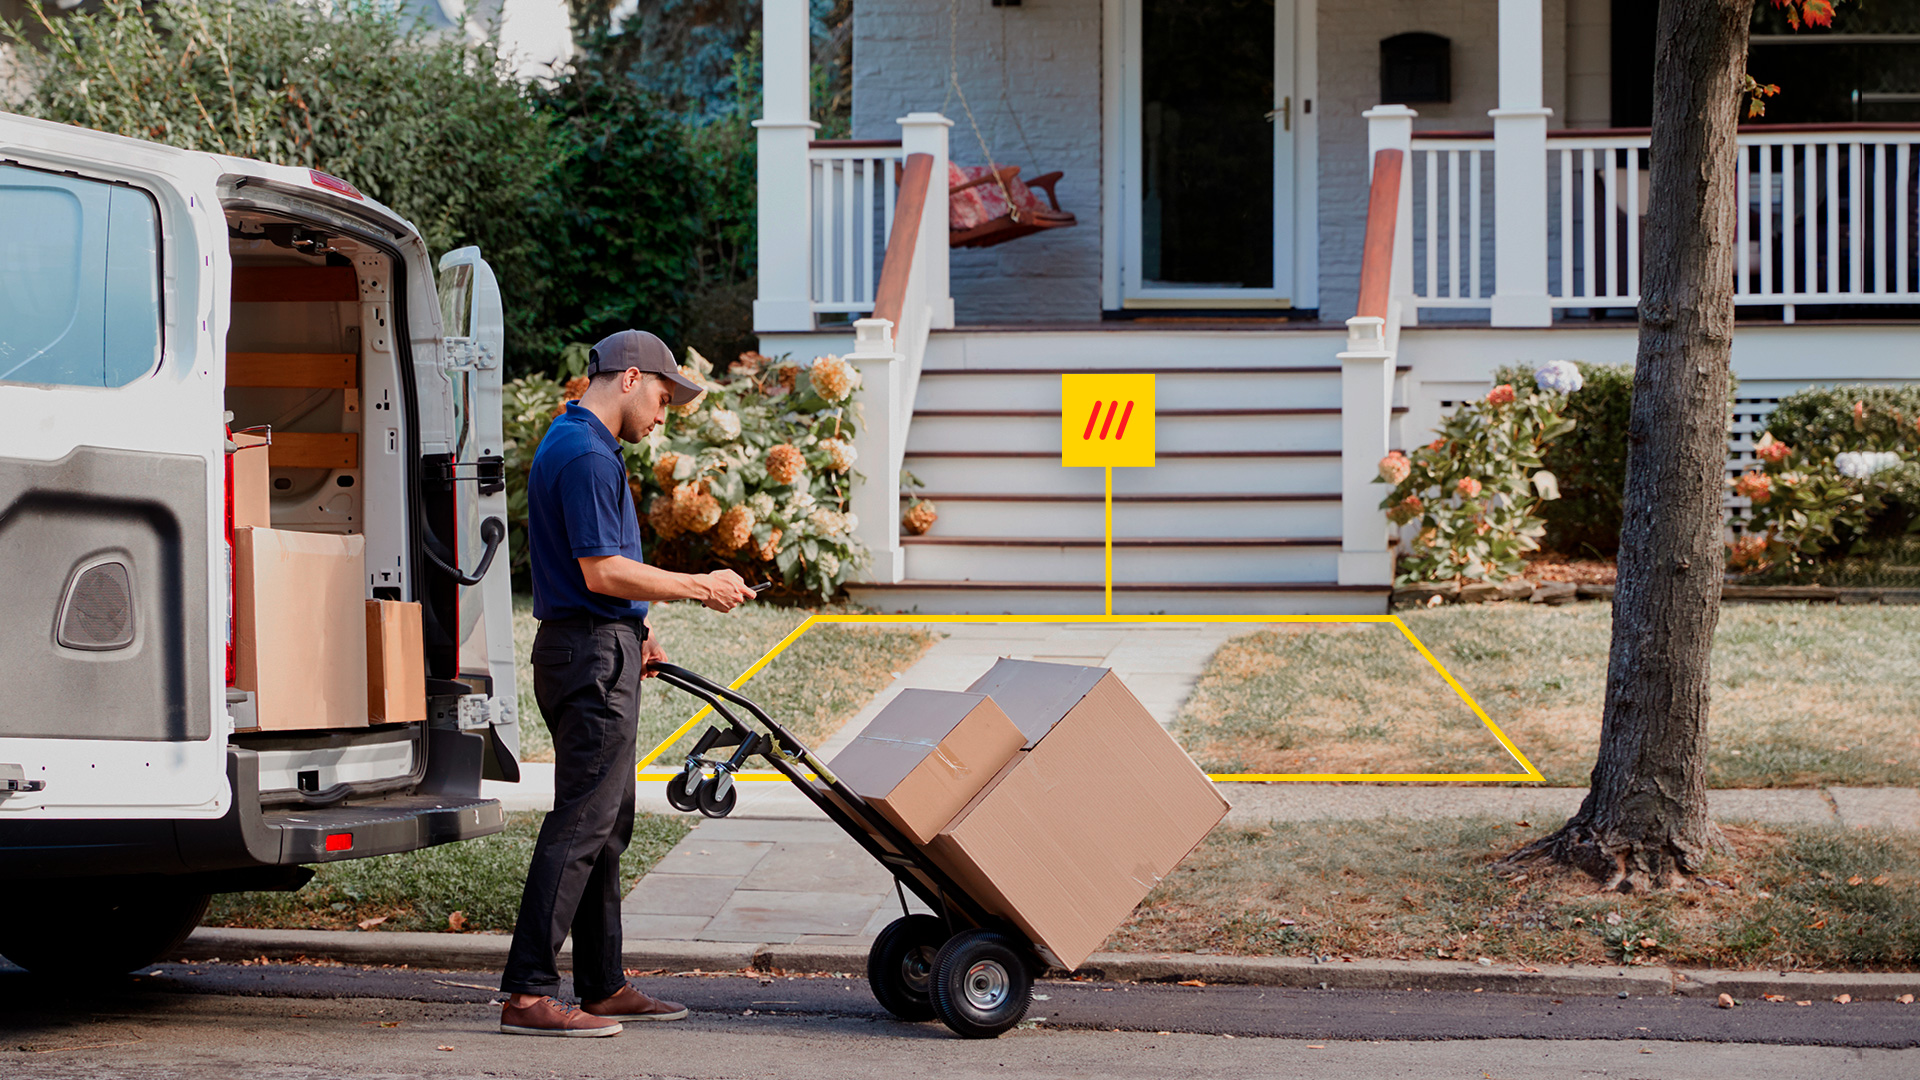 deliveryman moving boxes towards a 3 word address